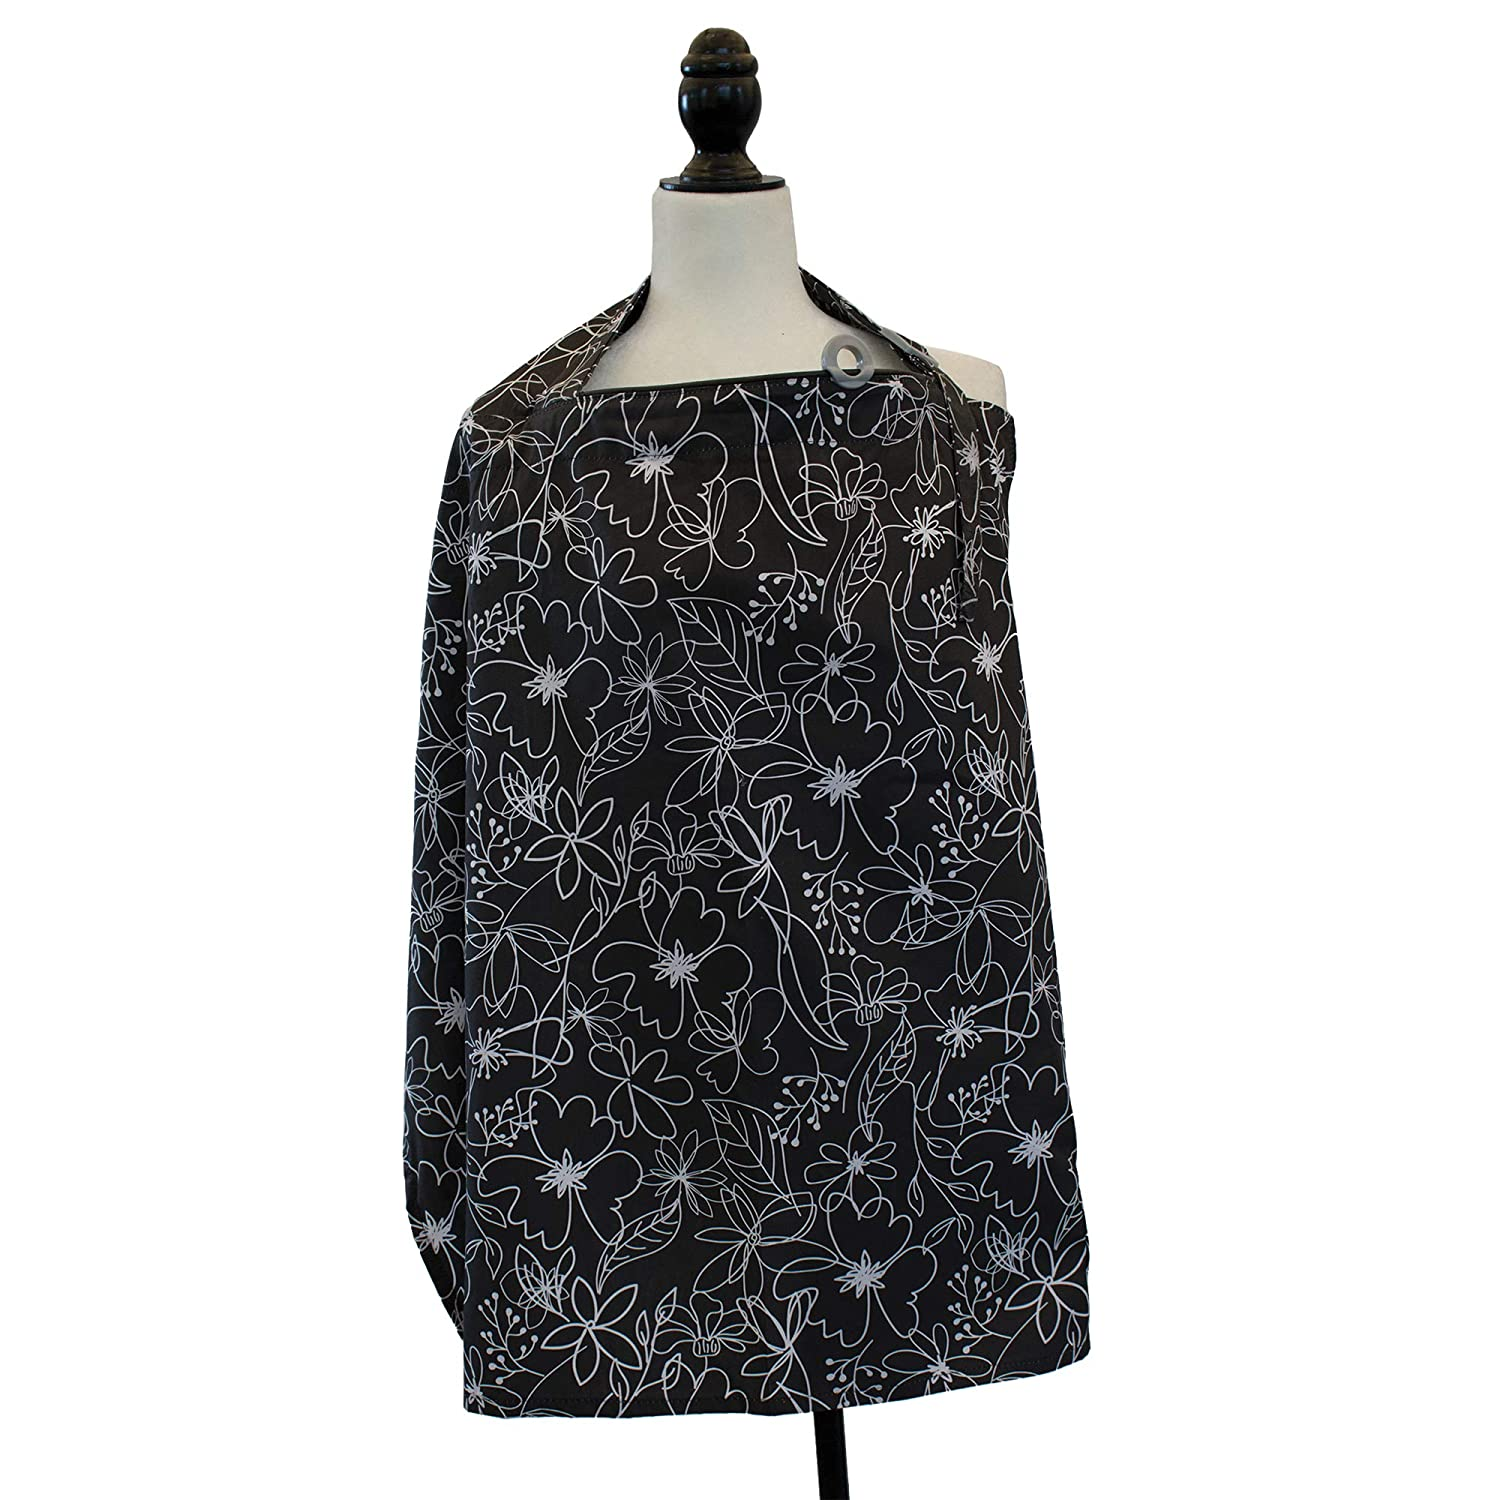 Boppy Nursing Cover, Black and White Floral Scribbles, fashionable nursing cover for breastfeeding